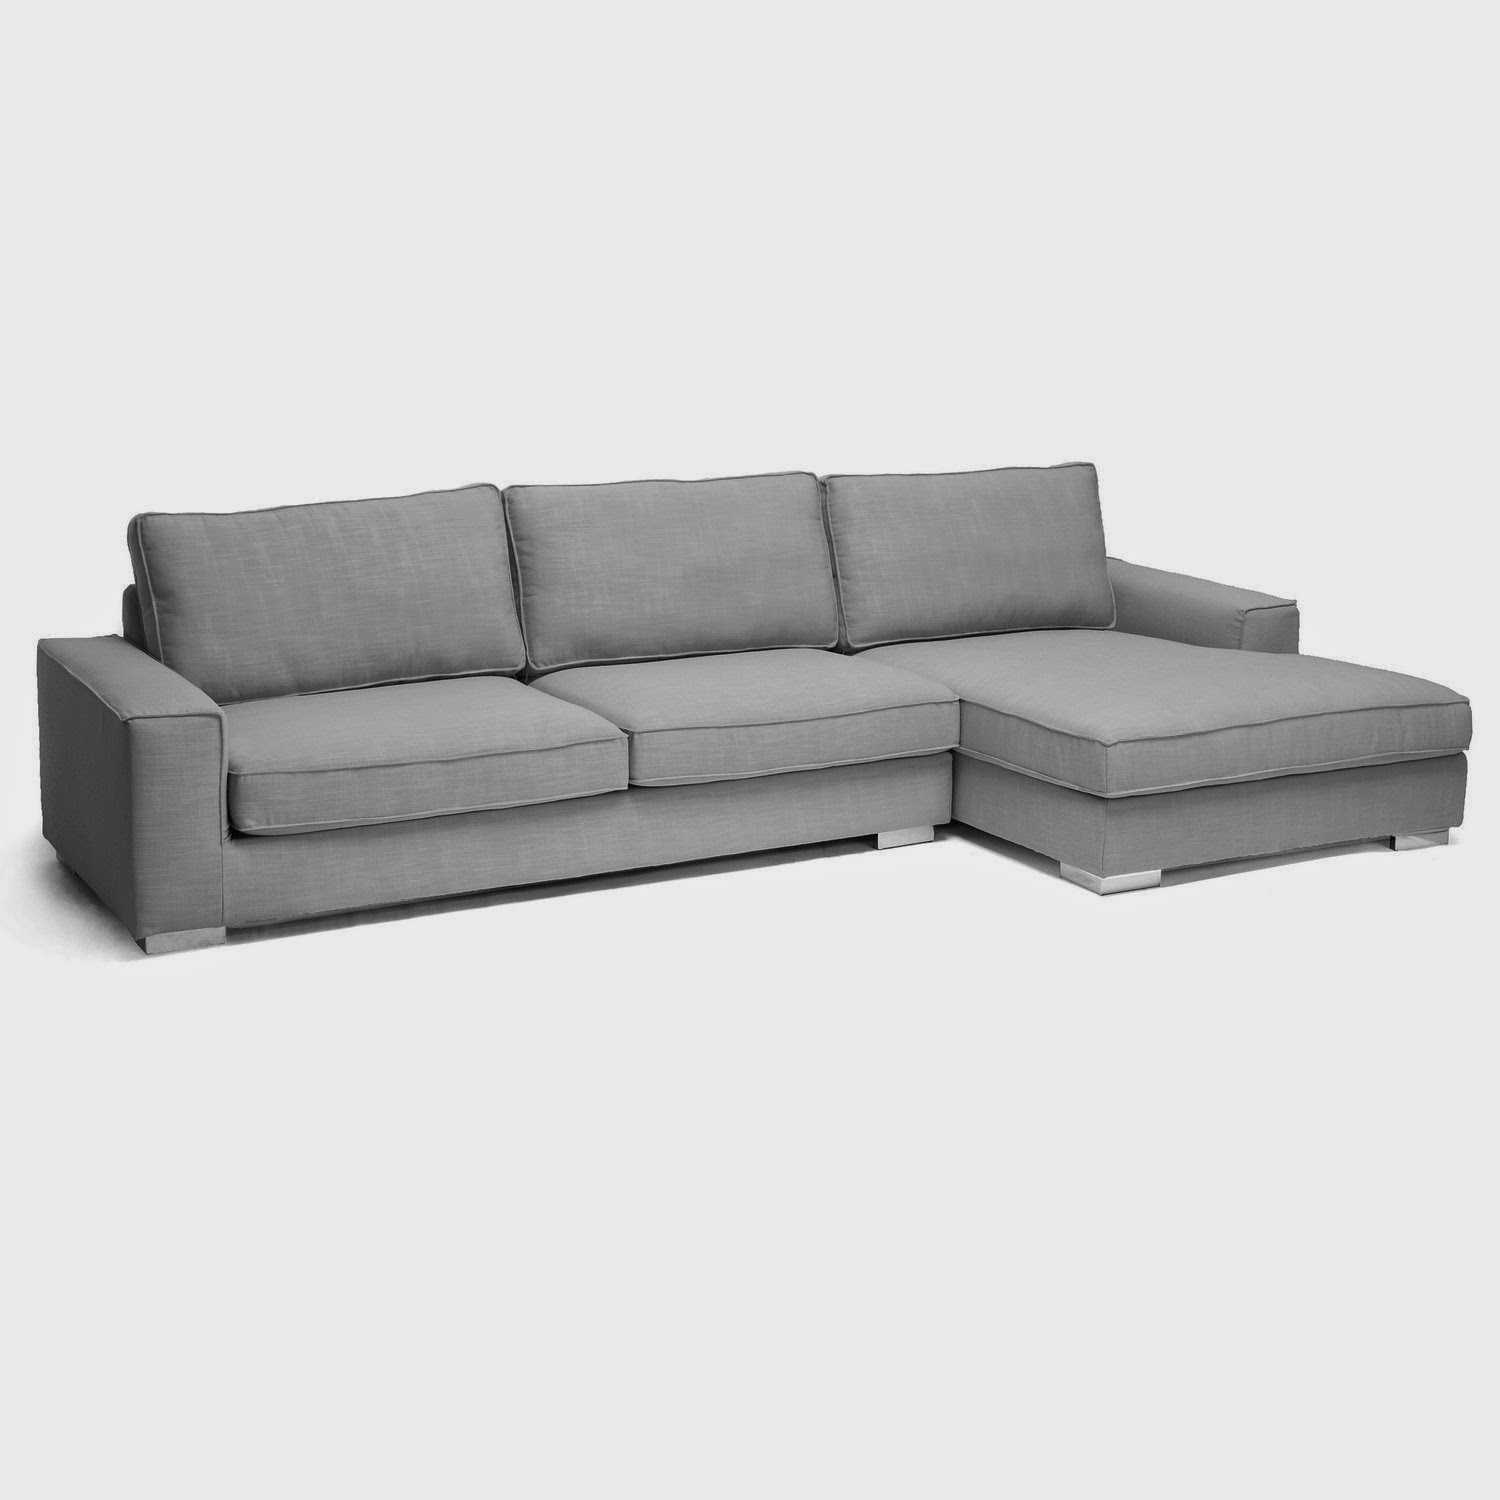 Good Modern Grey Couch 51 For Sofa Room Ideas with Modern Grey Couch